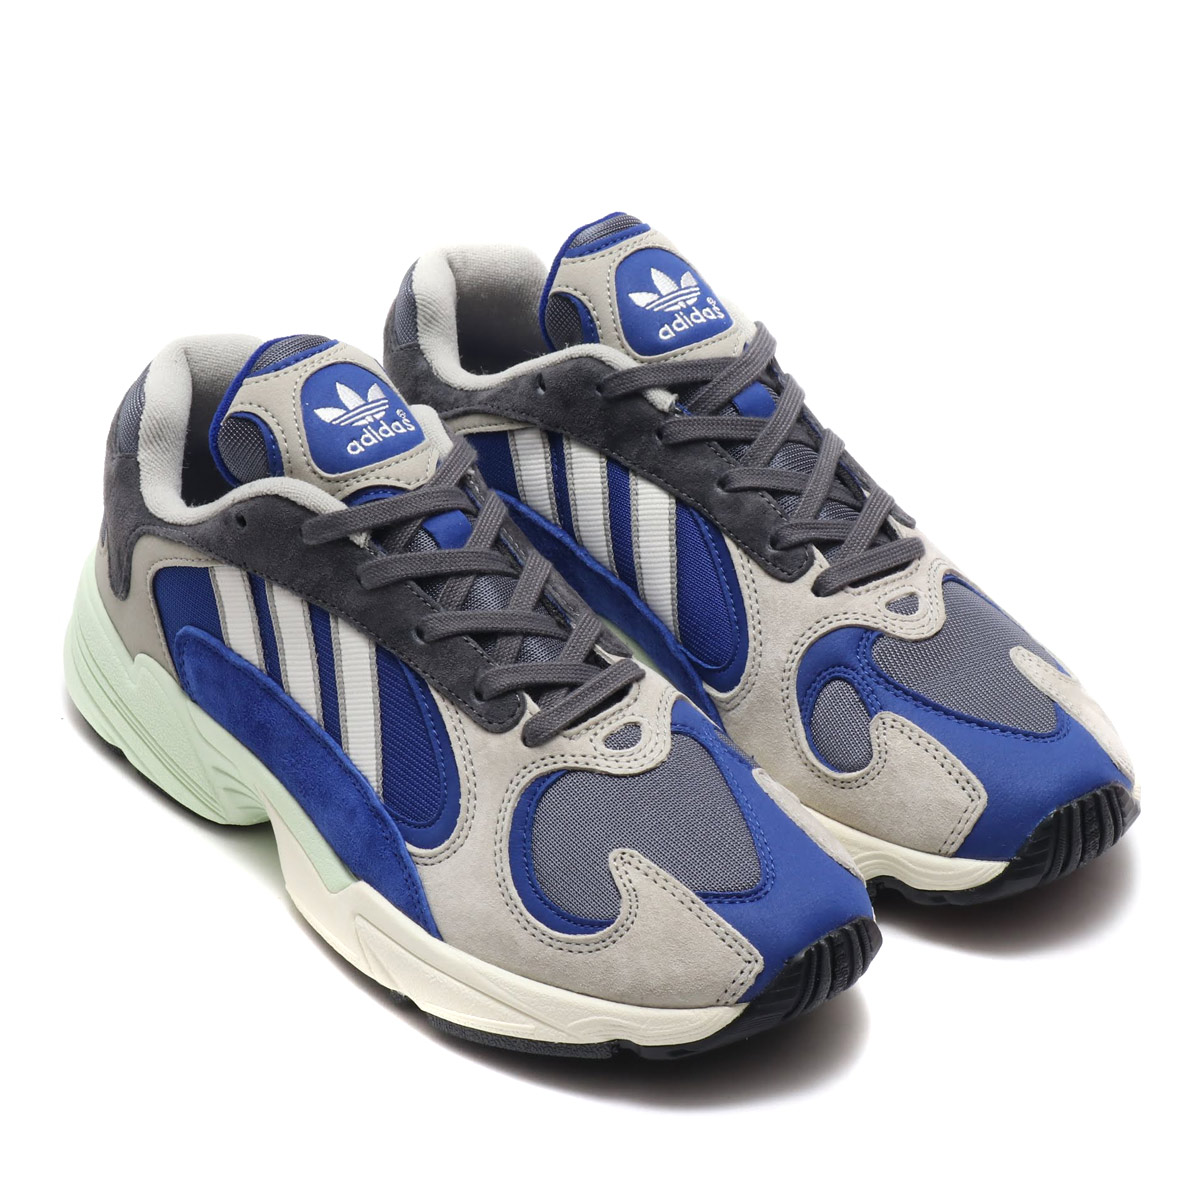 adidas Originals YUNG-1 (Adidas young people 1) sesame   gray five F17   chalk white 18FW-I c89bb7311